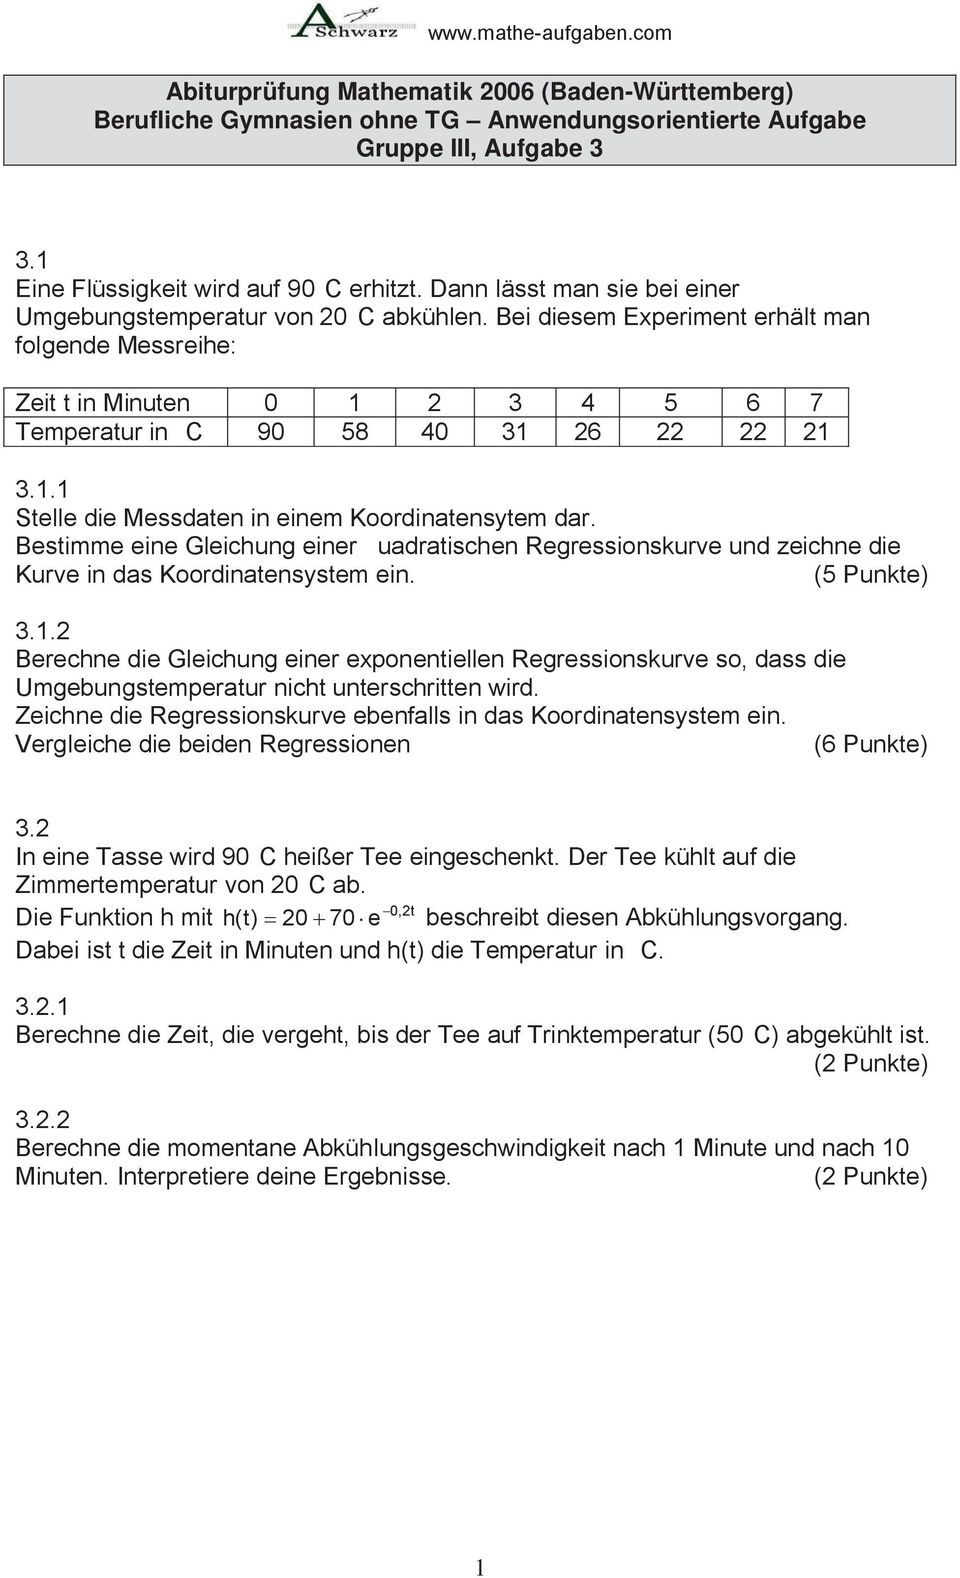 Amazing Mathe Arbeitsblatt Bedruckbaren Picture Collection - Mathe ...